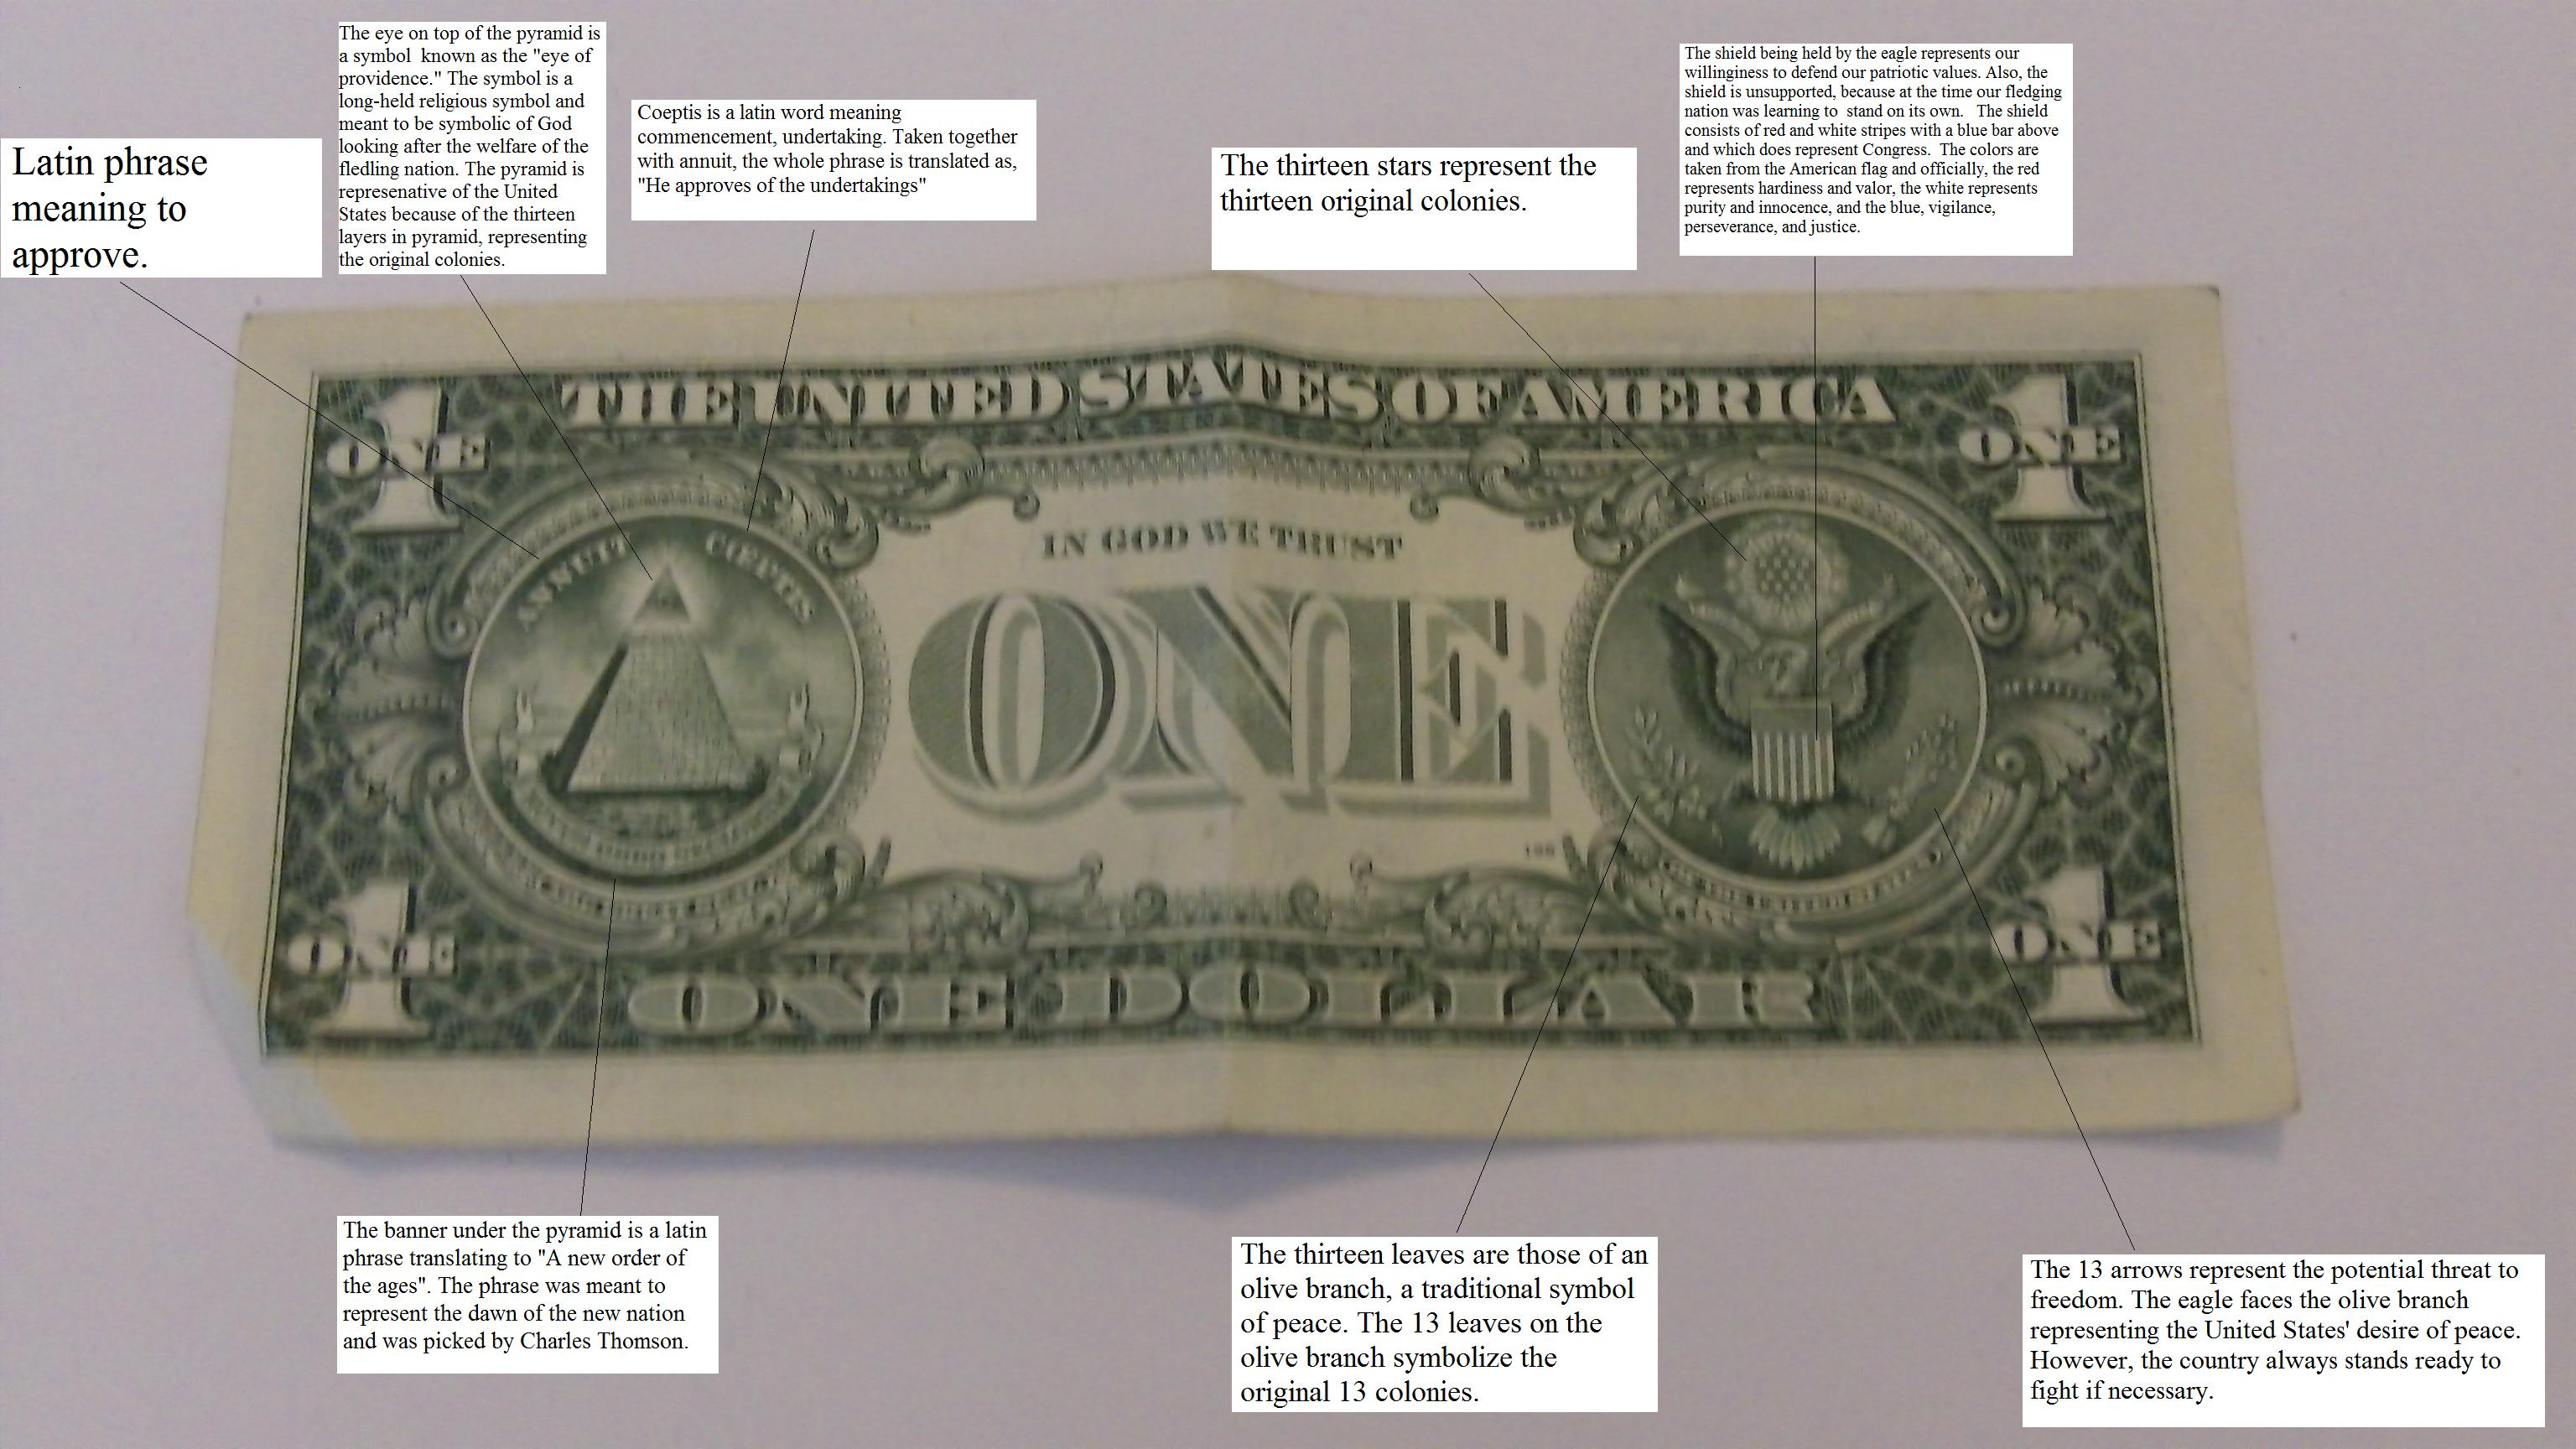 Markus johnsons online extra the digital journalism blog my idea for an online extra was to explore the history and meaning behind the symbols associated with the back of the us dollar bill biocorpaavc Images